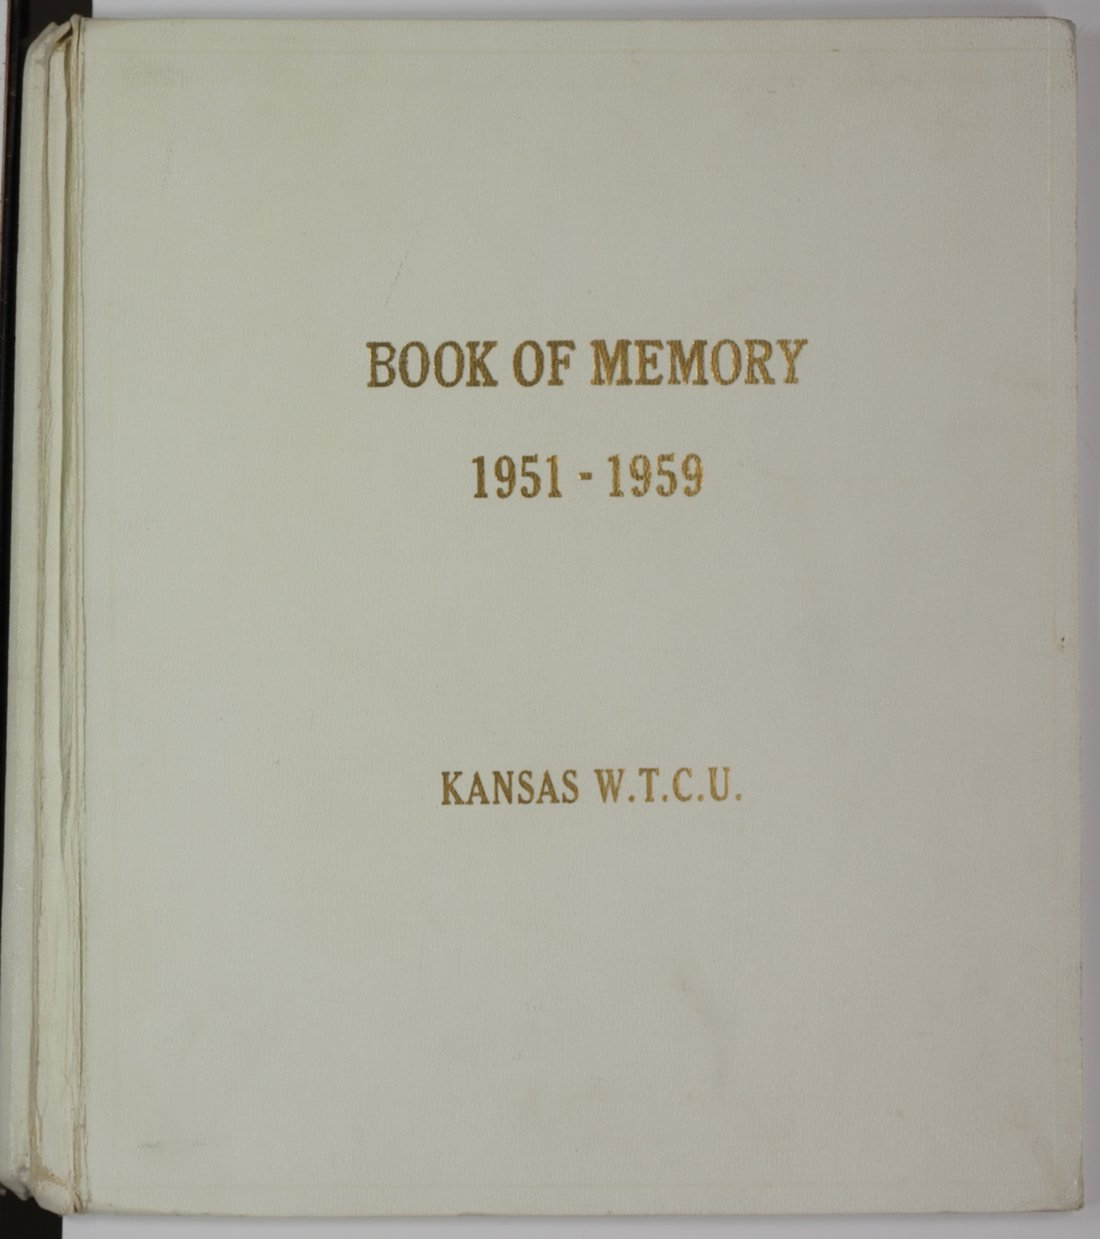 Kansas Woman's Christian Temperance Union memory book - 1 [Front Cover]